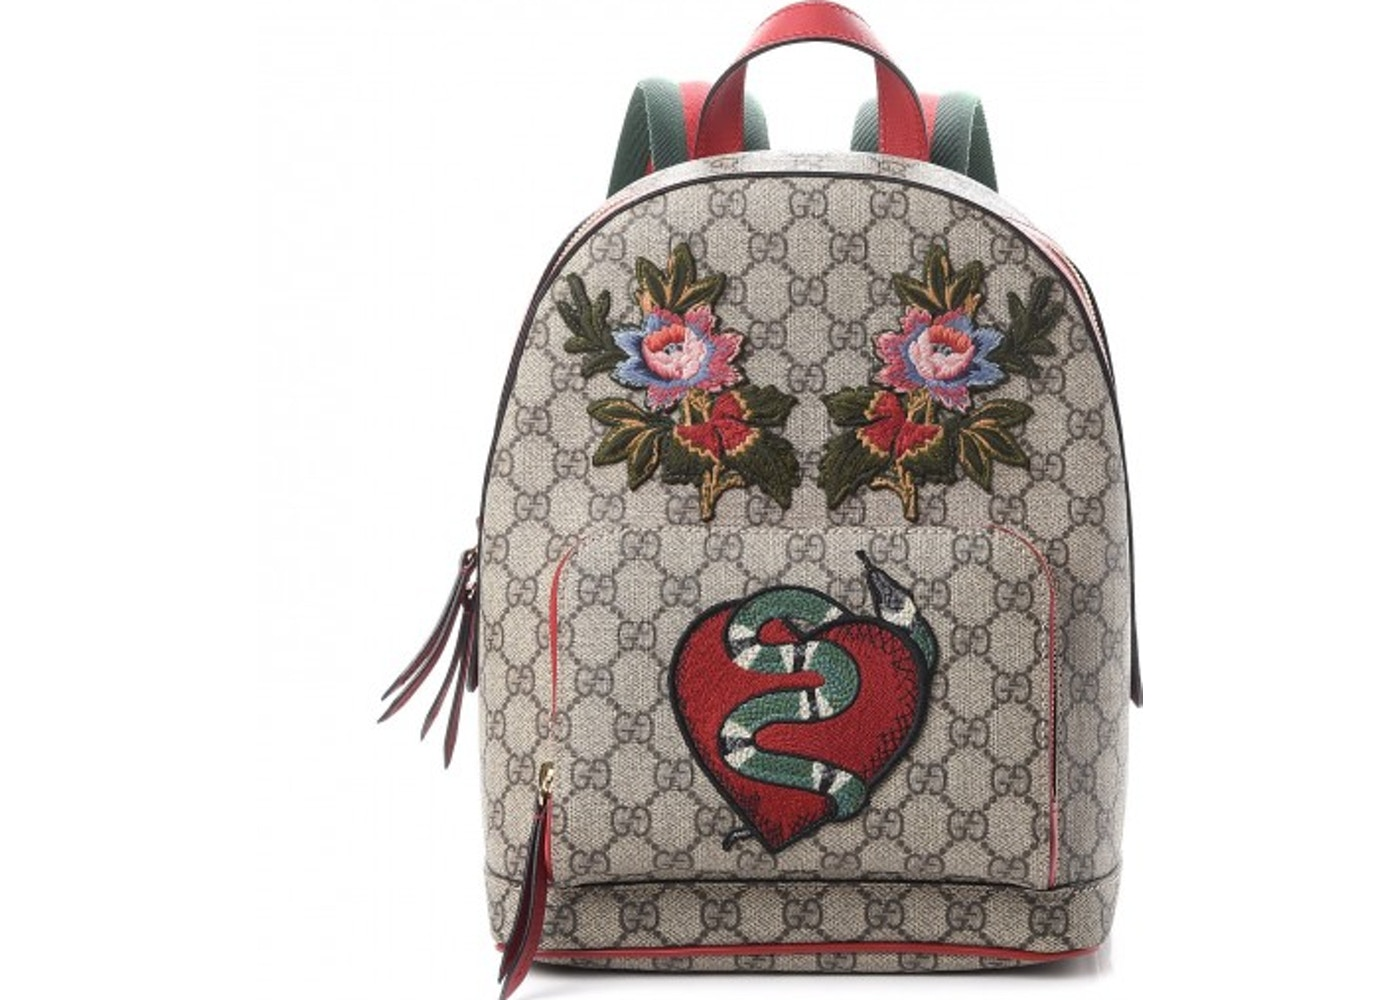 756375427d5f Gucci Backpack Monogram GG Supreme Flower Snake Patches Small ...